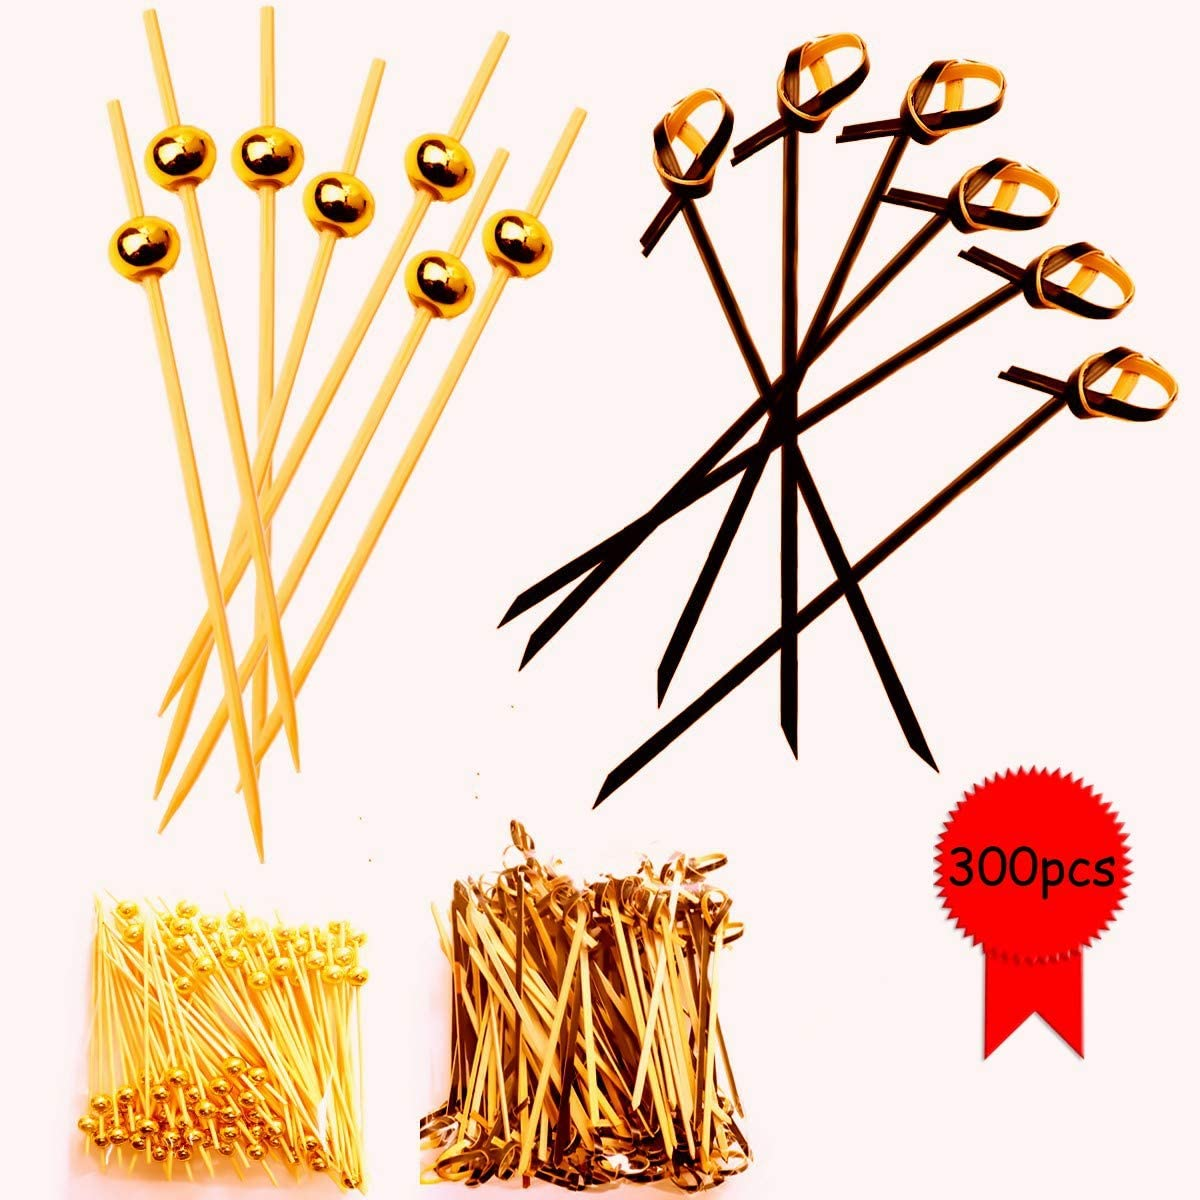 MotBach 300 pieces Handmade Bamboo Toothpicks, 200pcs Gold Pearl(4.8 Inch) and 4.1Inch Black Looped Knot, 100 in Count for Bar,Party,Wedding